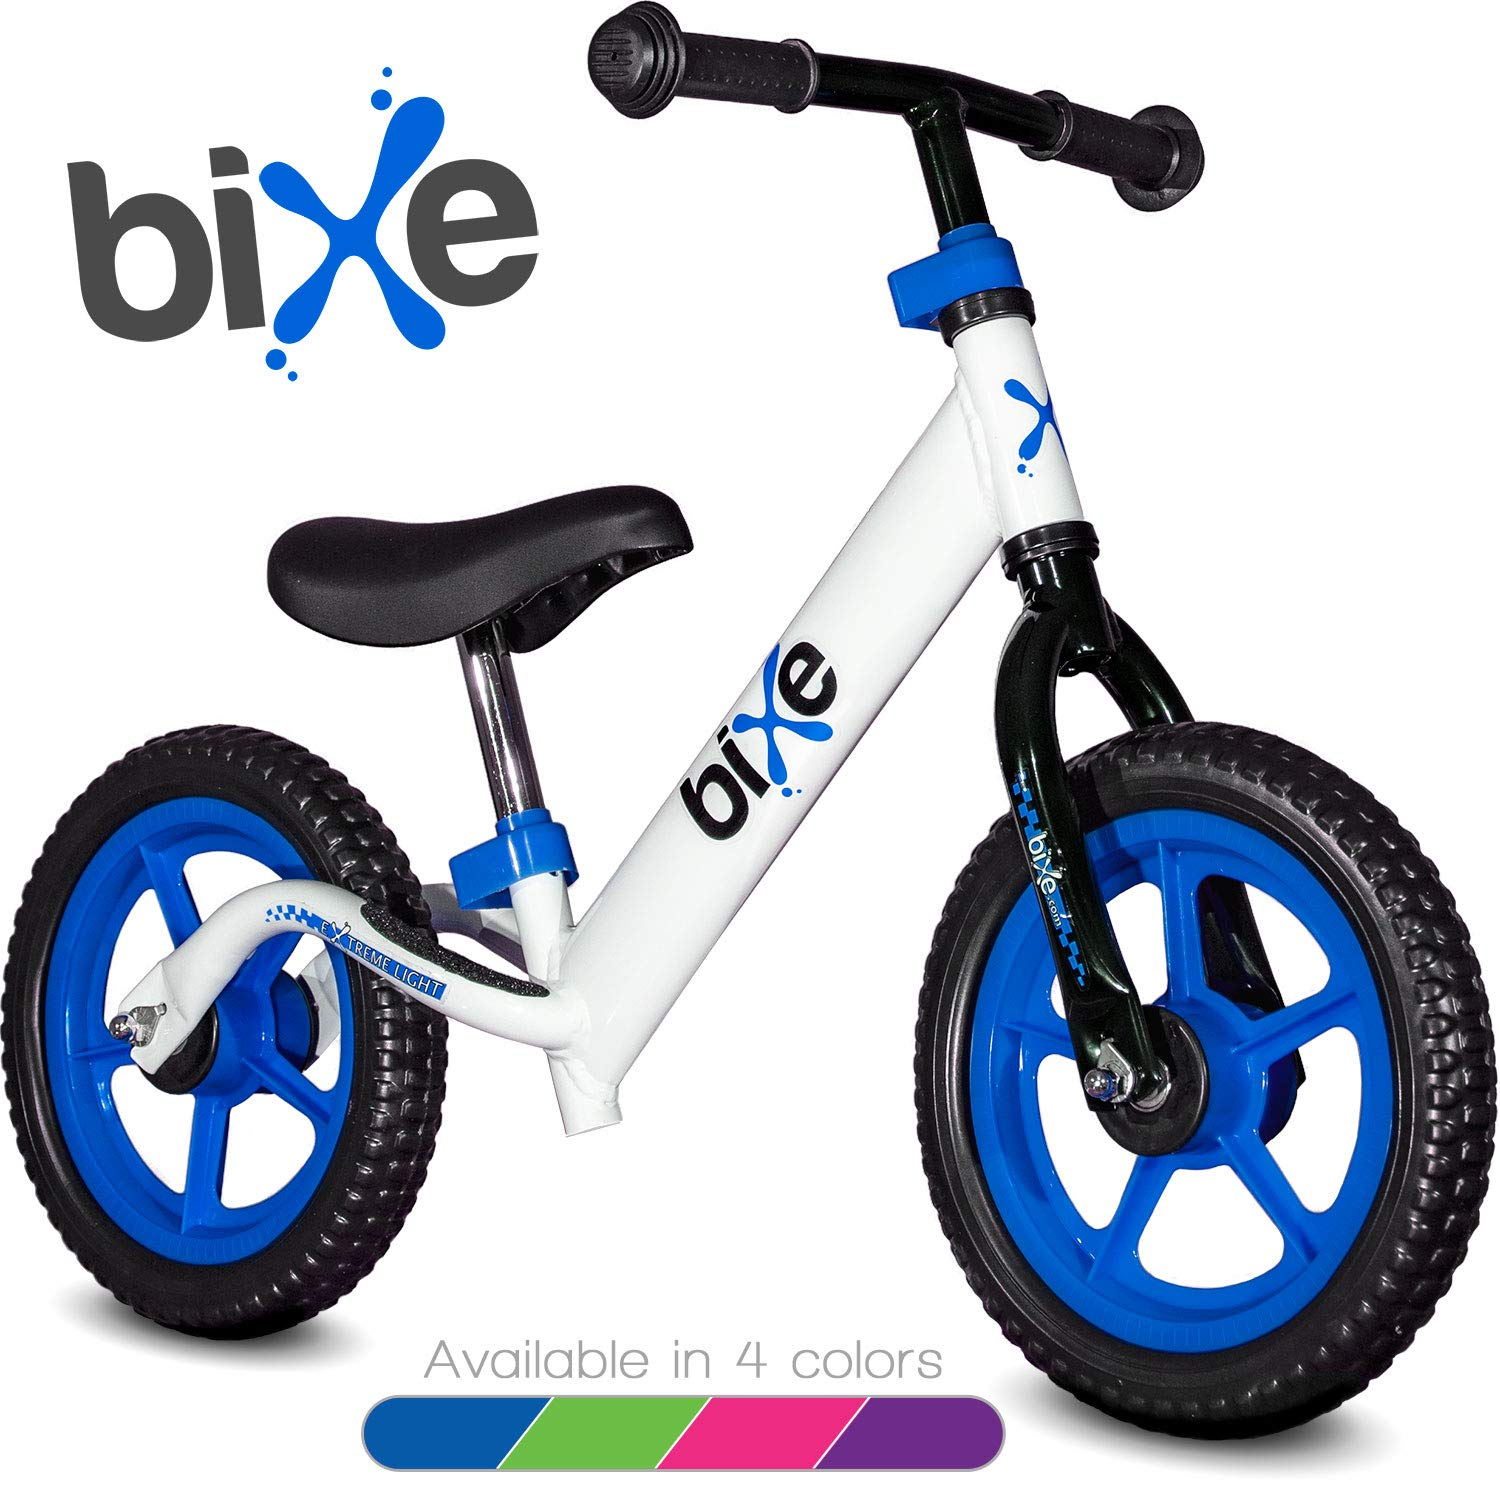 Top 11 Best Balance Bikes for Toddlers Reviews in 2020 5